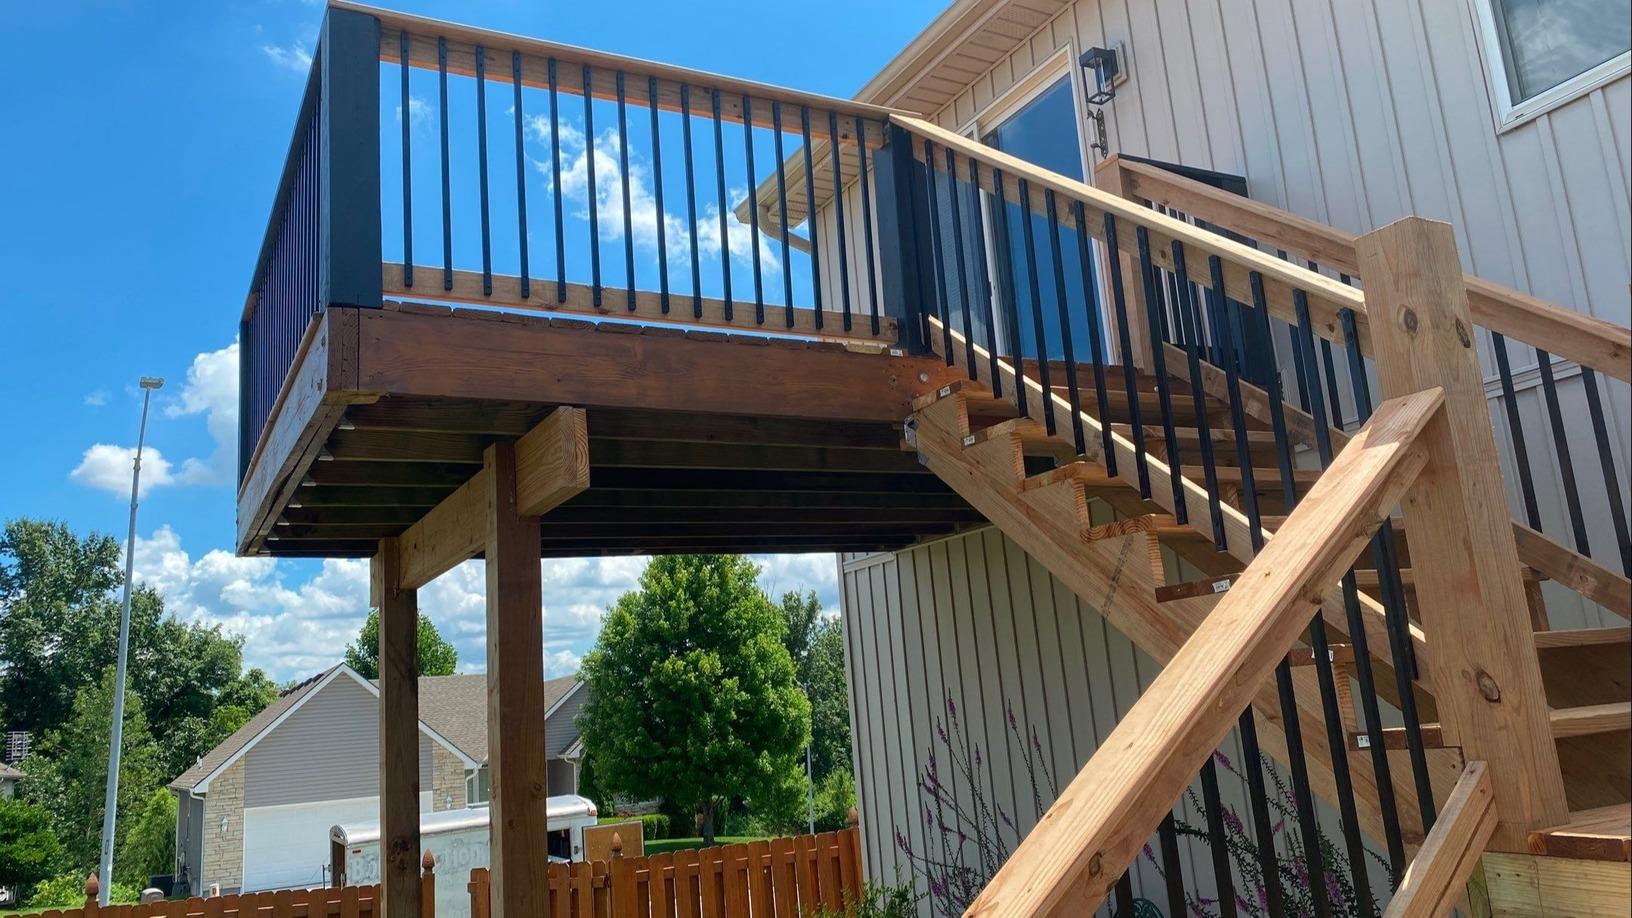 Deck Stairs added to the Existing Deck in Independence, MO - After Photo